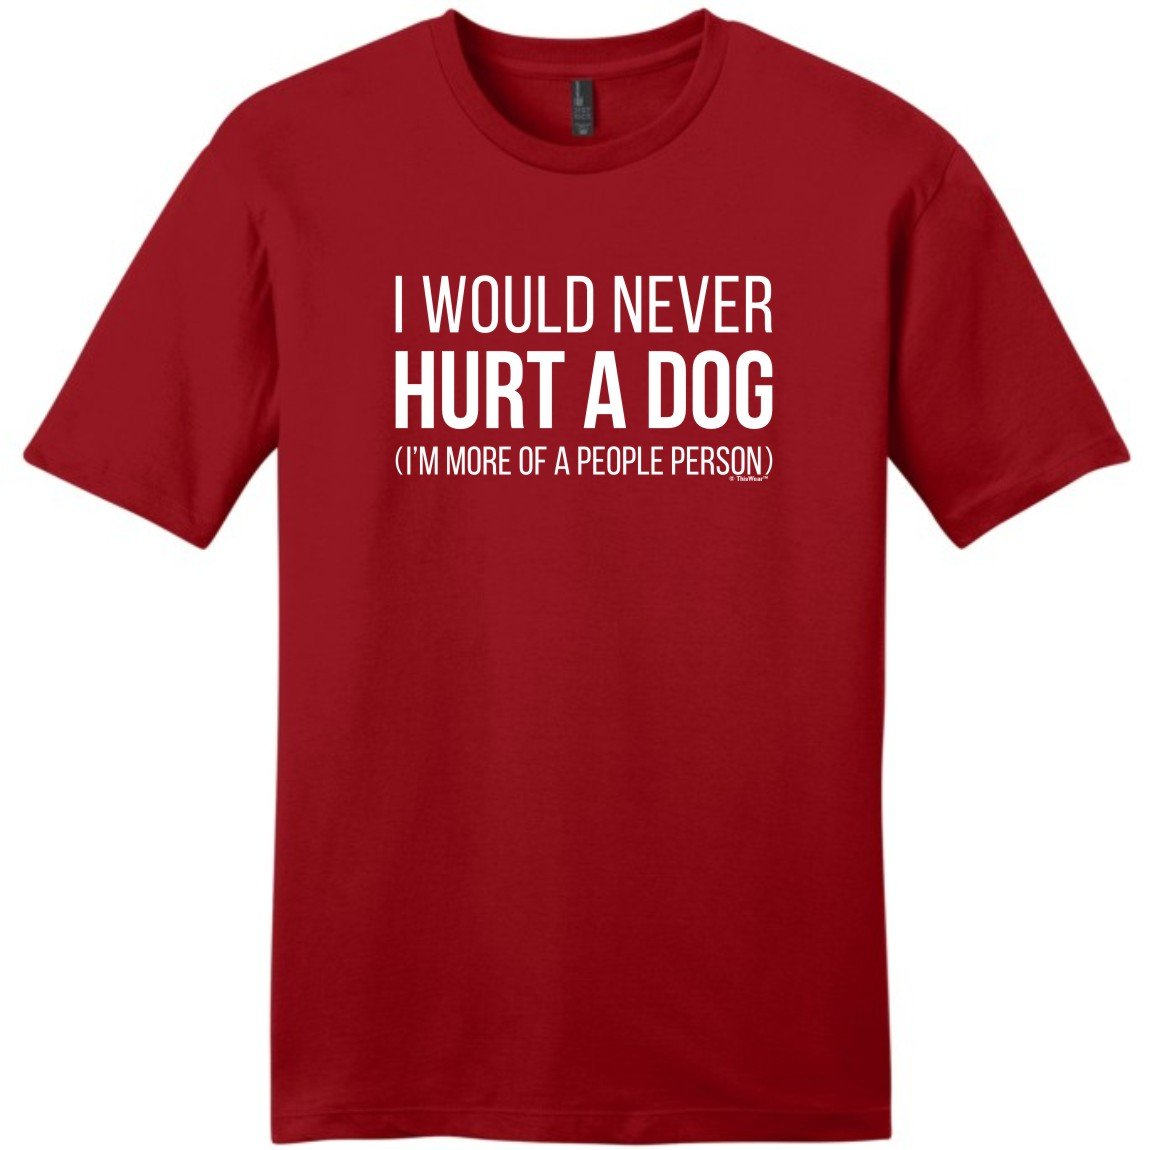 Humorous Gifts I Would Never Hurt A Dog Sarcastic S 8831 Shirts